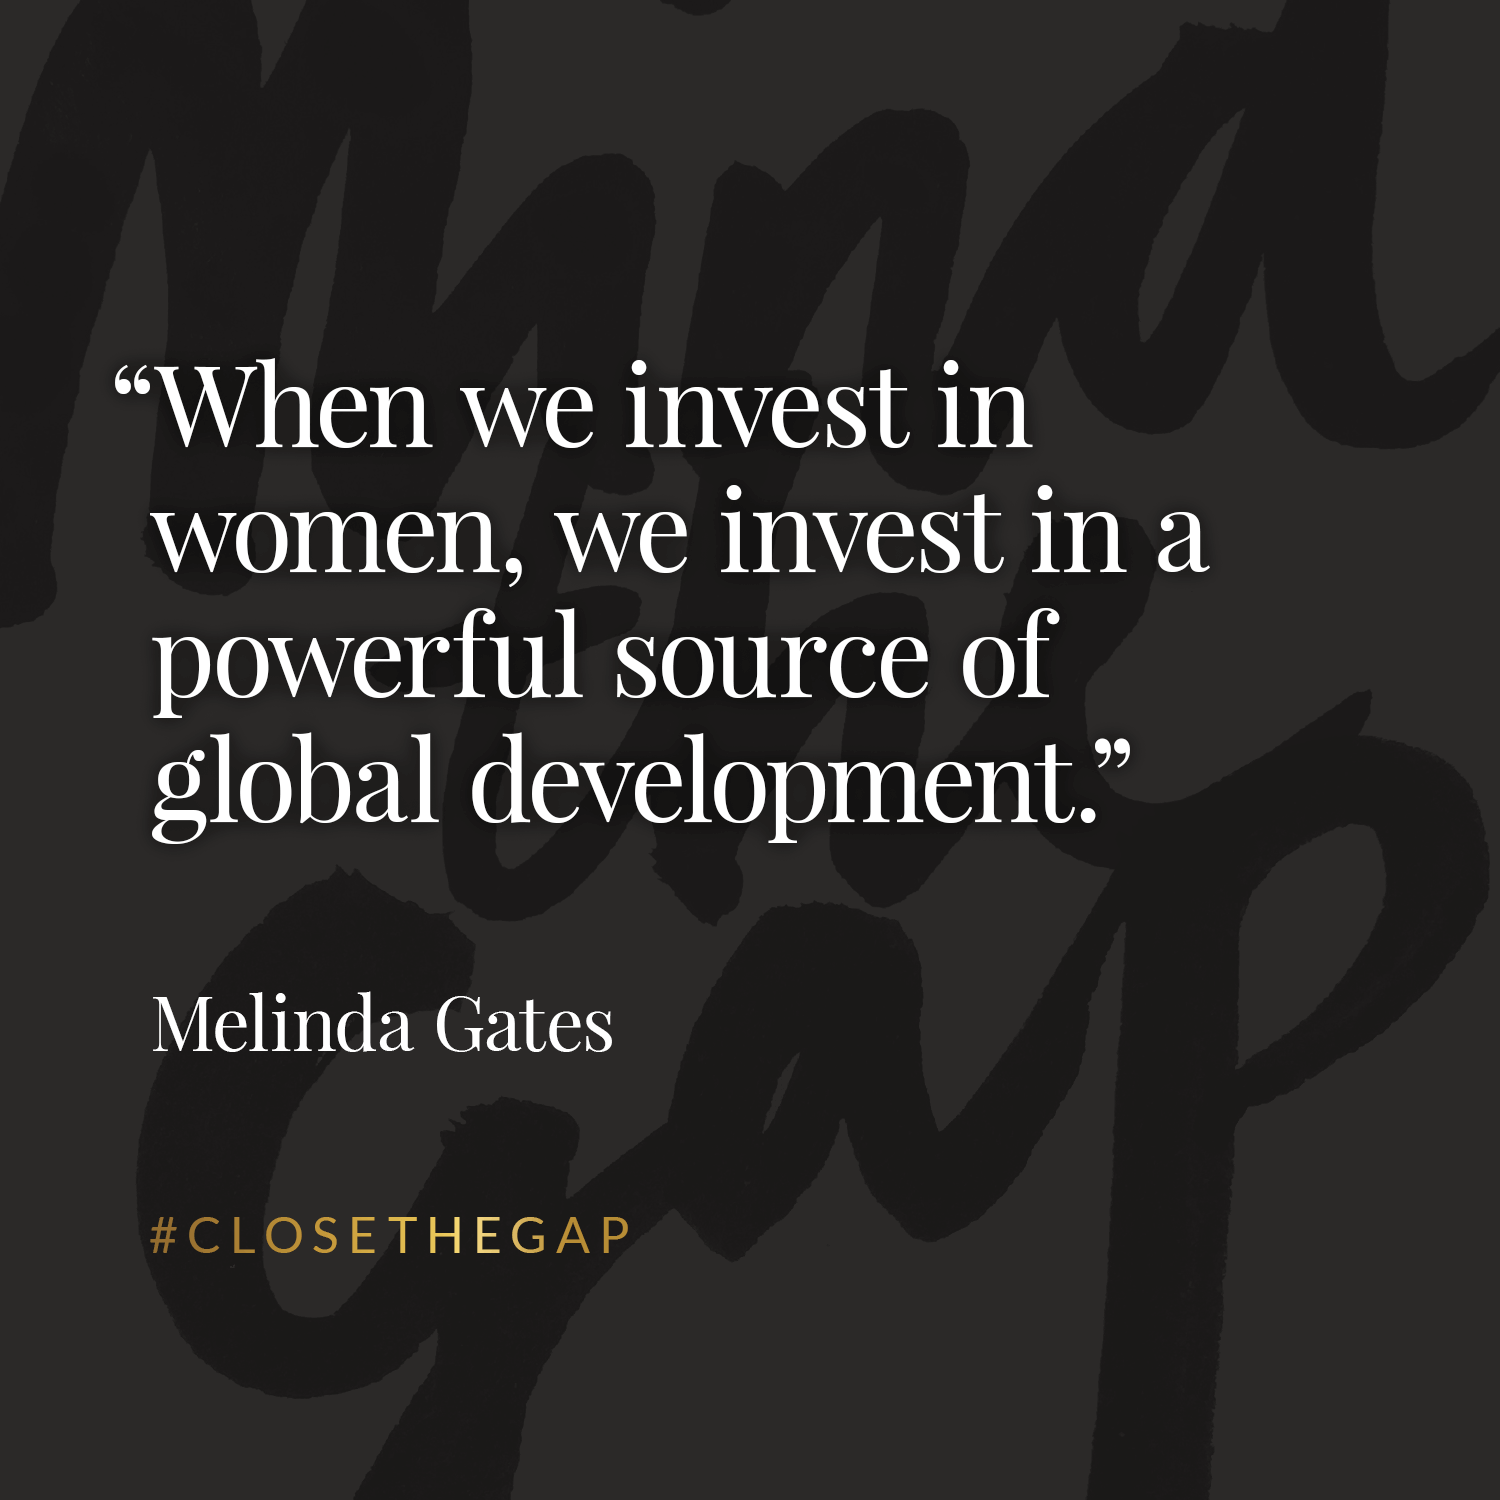 Ebook melindagates